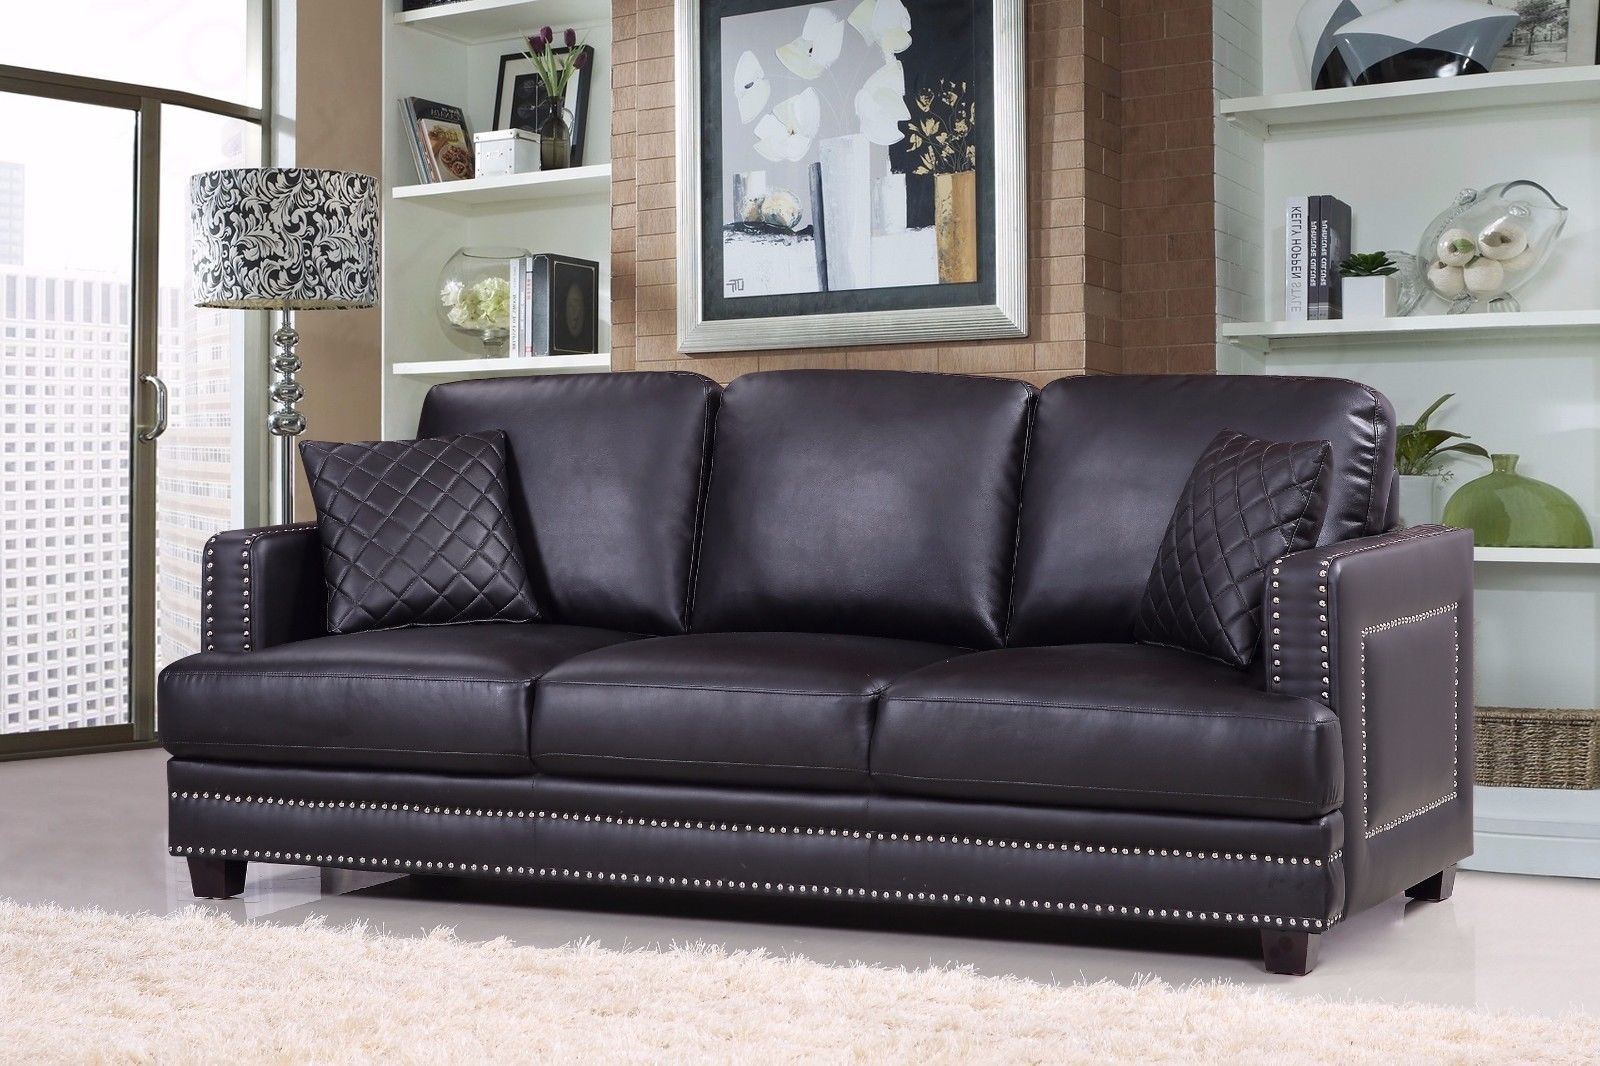 Meridian 655 Bonded Leather Living Room Sofa Set 2pc. Black Contemporary Style